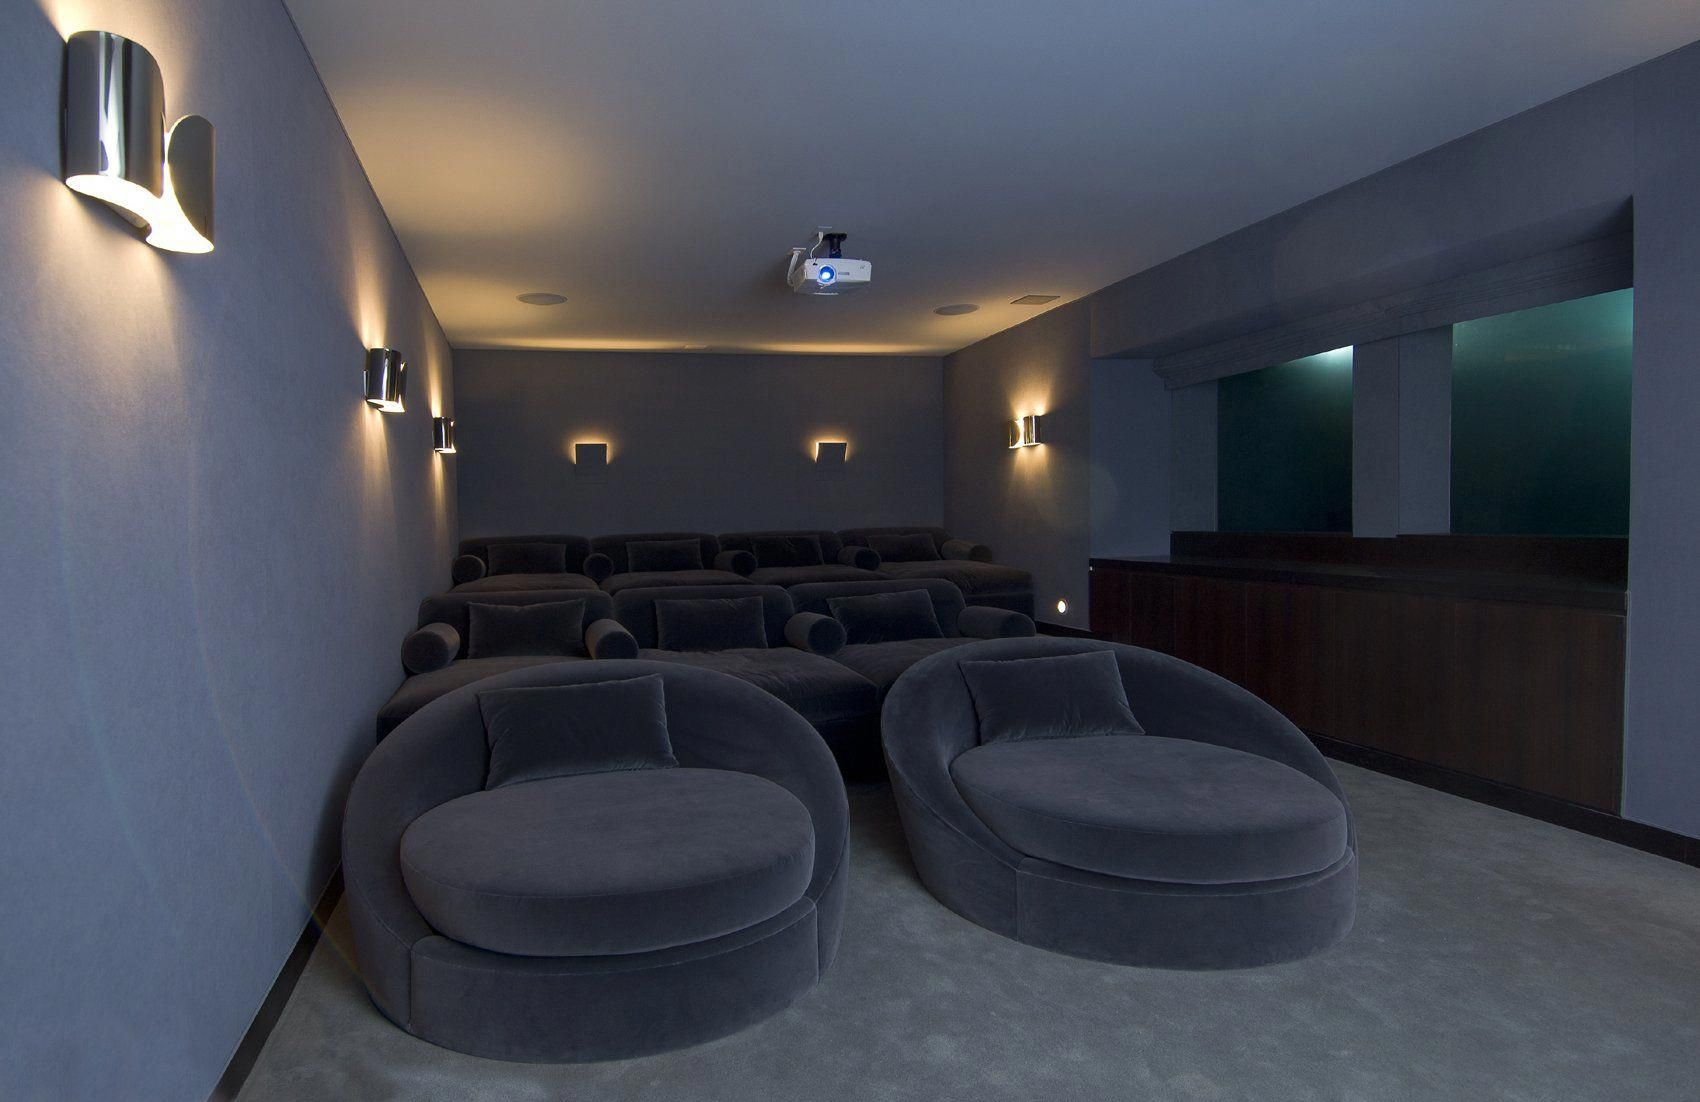 Hopen Place Is A Villa Designed By Whipple Russell Architects And Located Atop Hollywood Hills Which Provides Such A Home Theater Design Home Cinema Room Home